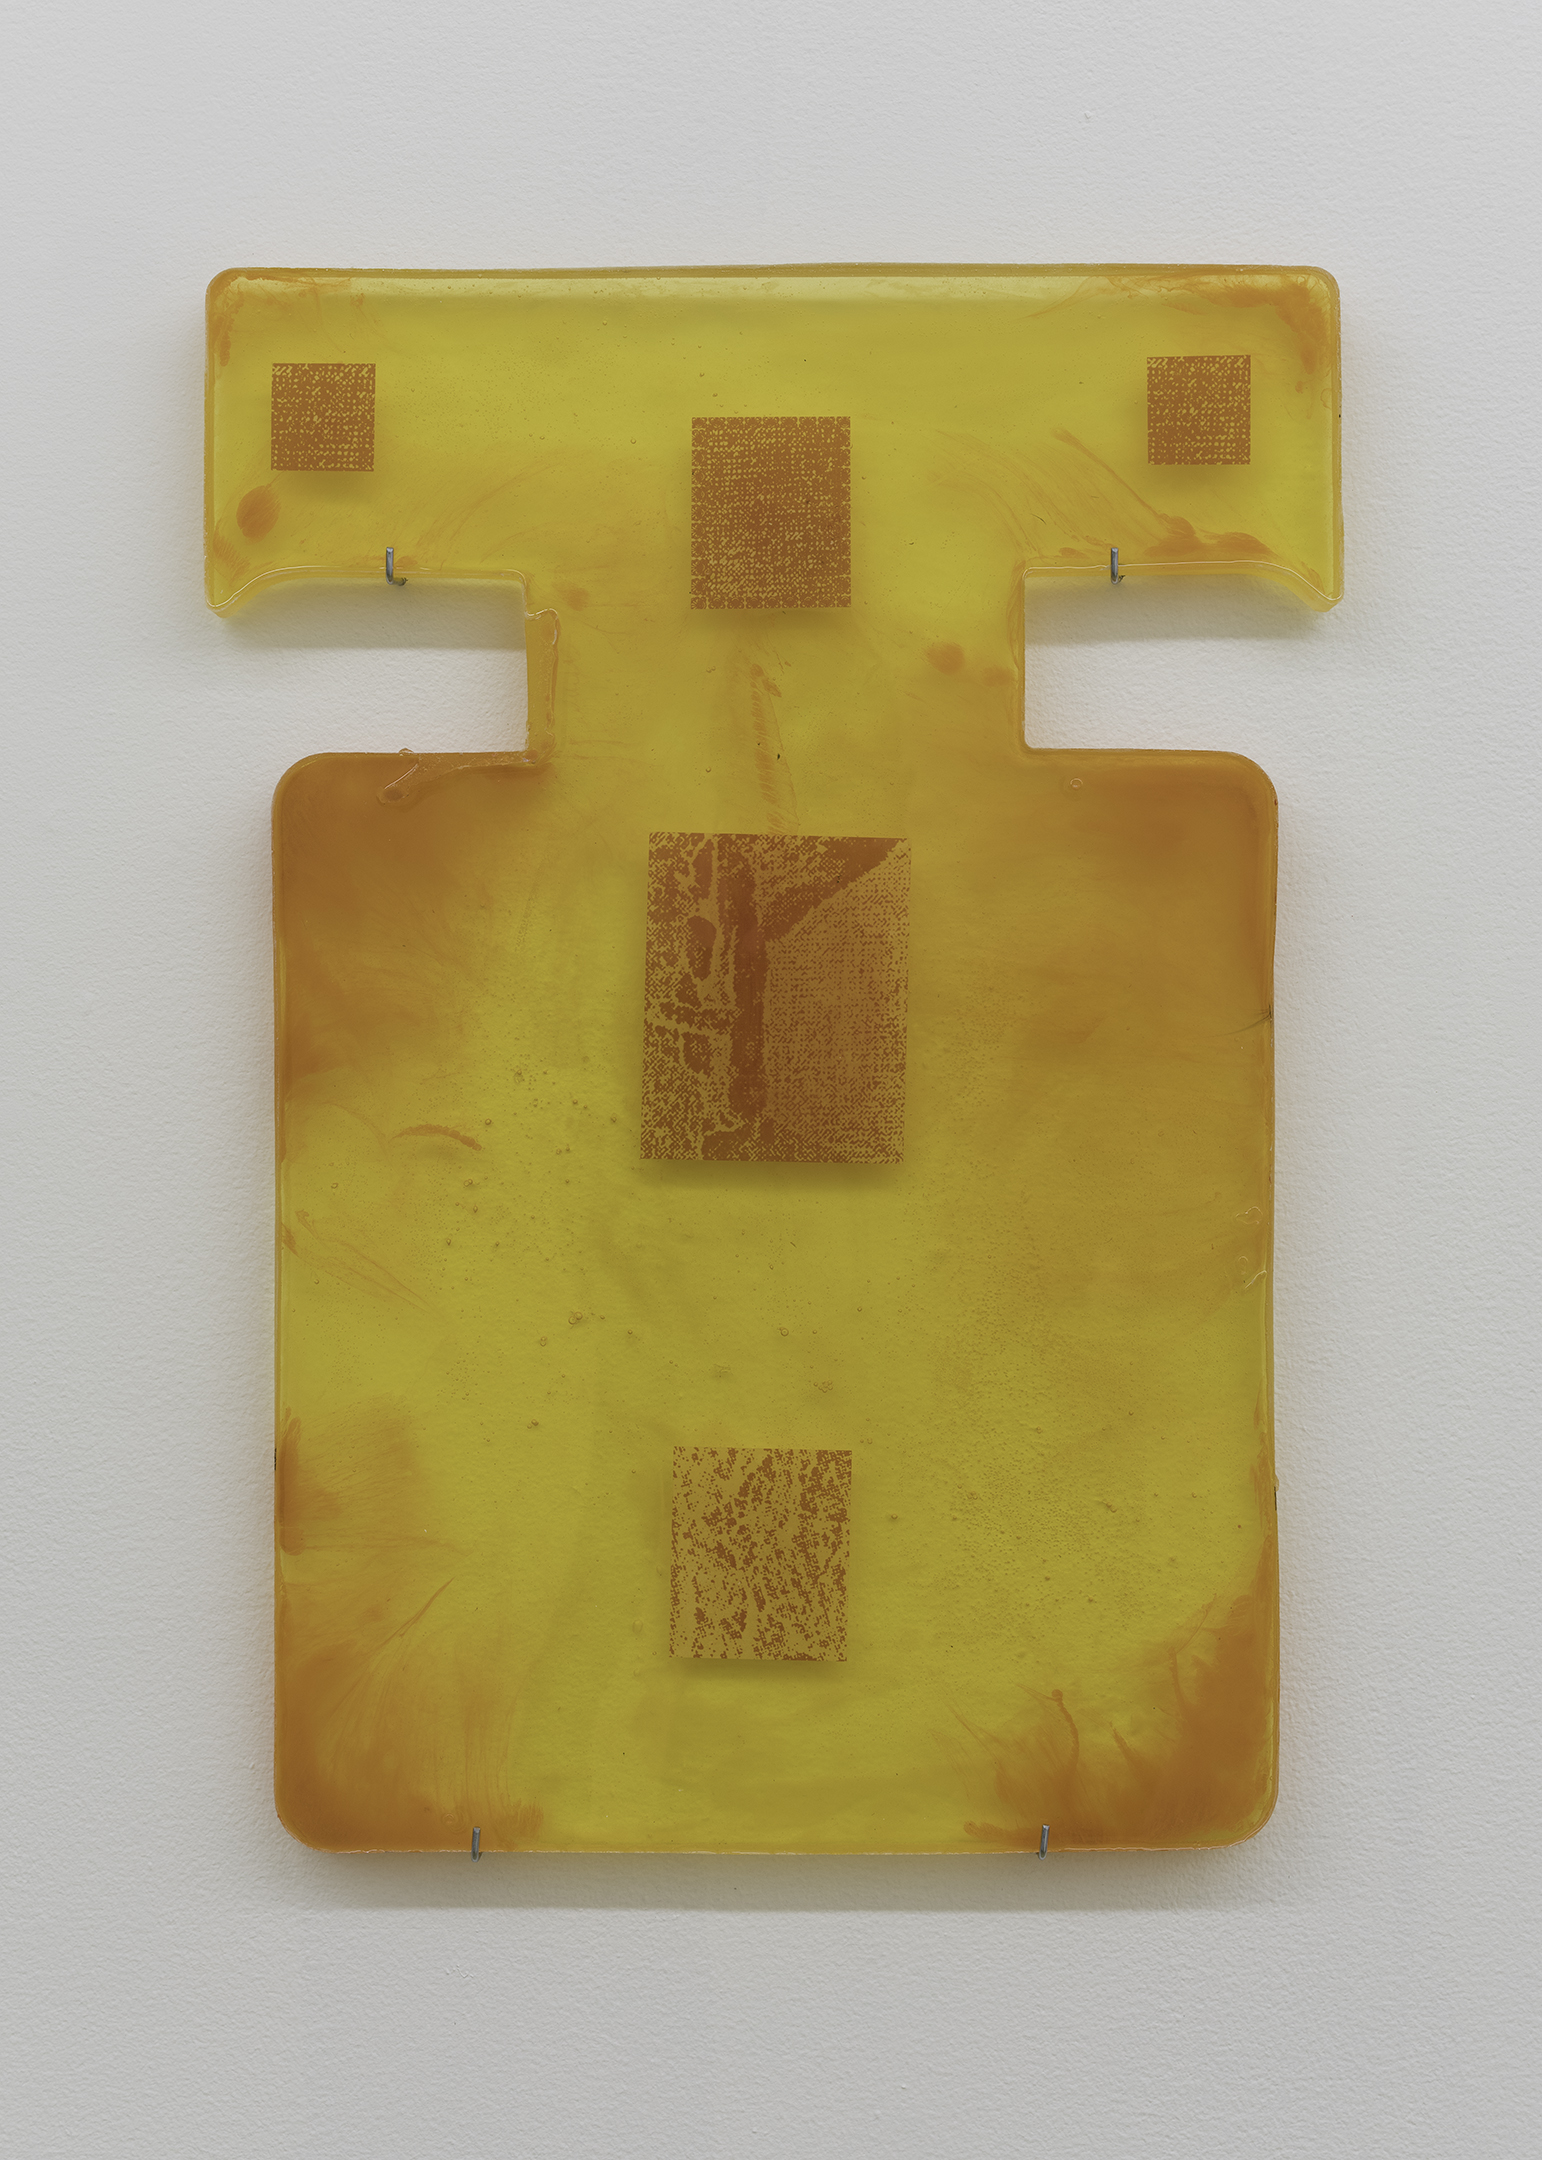 nina hartmann, how to depict a void, resin, pigment, acrylic, paper, xerox toner, 20 x 13 in